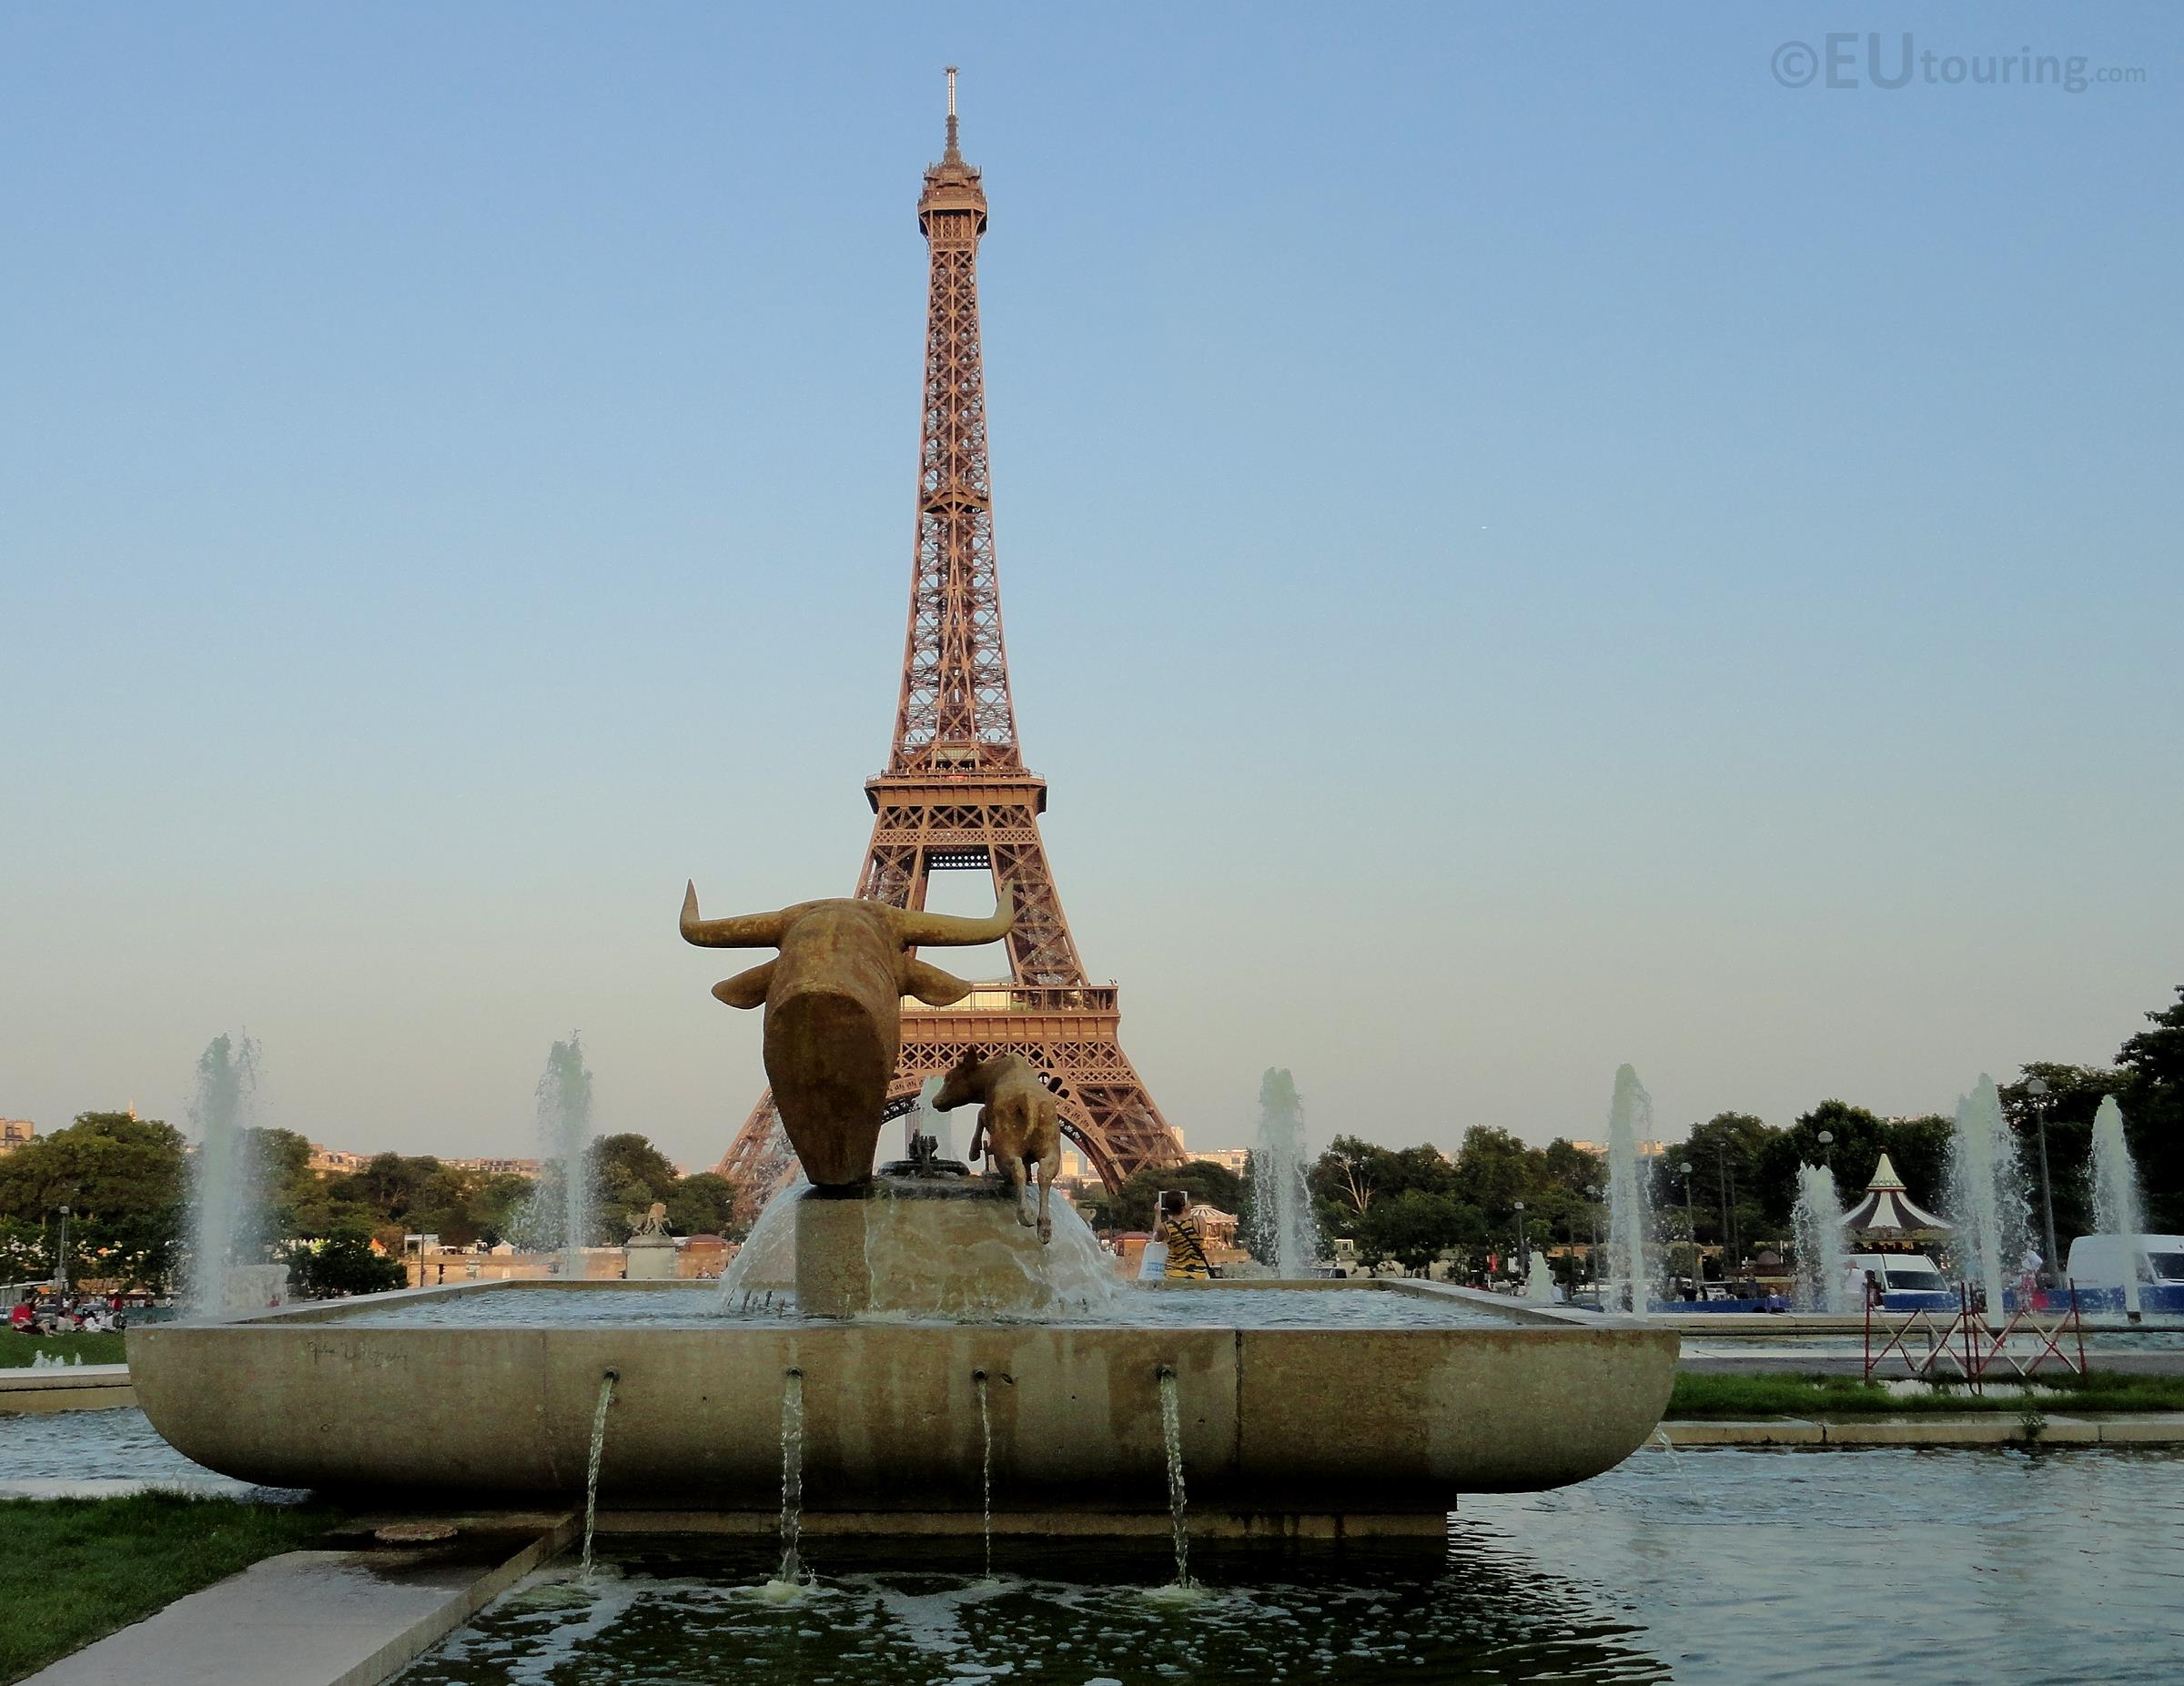 Statues facing the Eiffel Tower